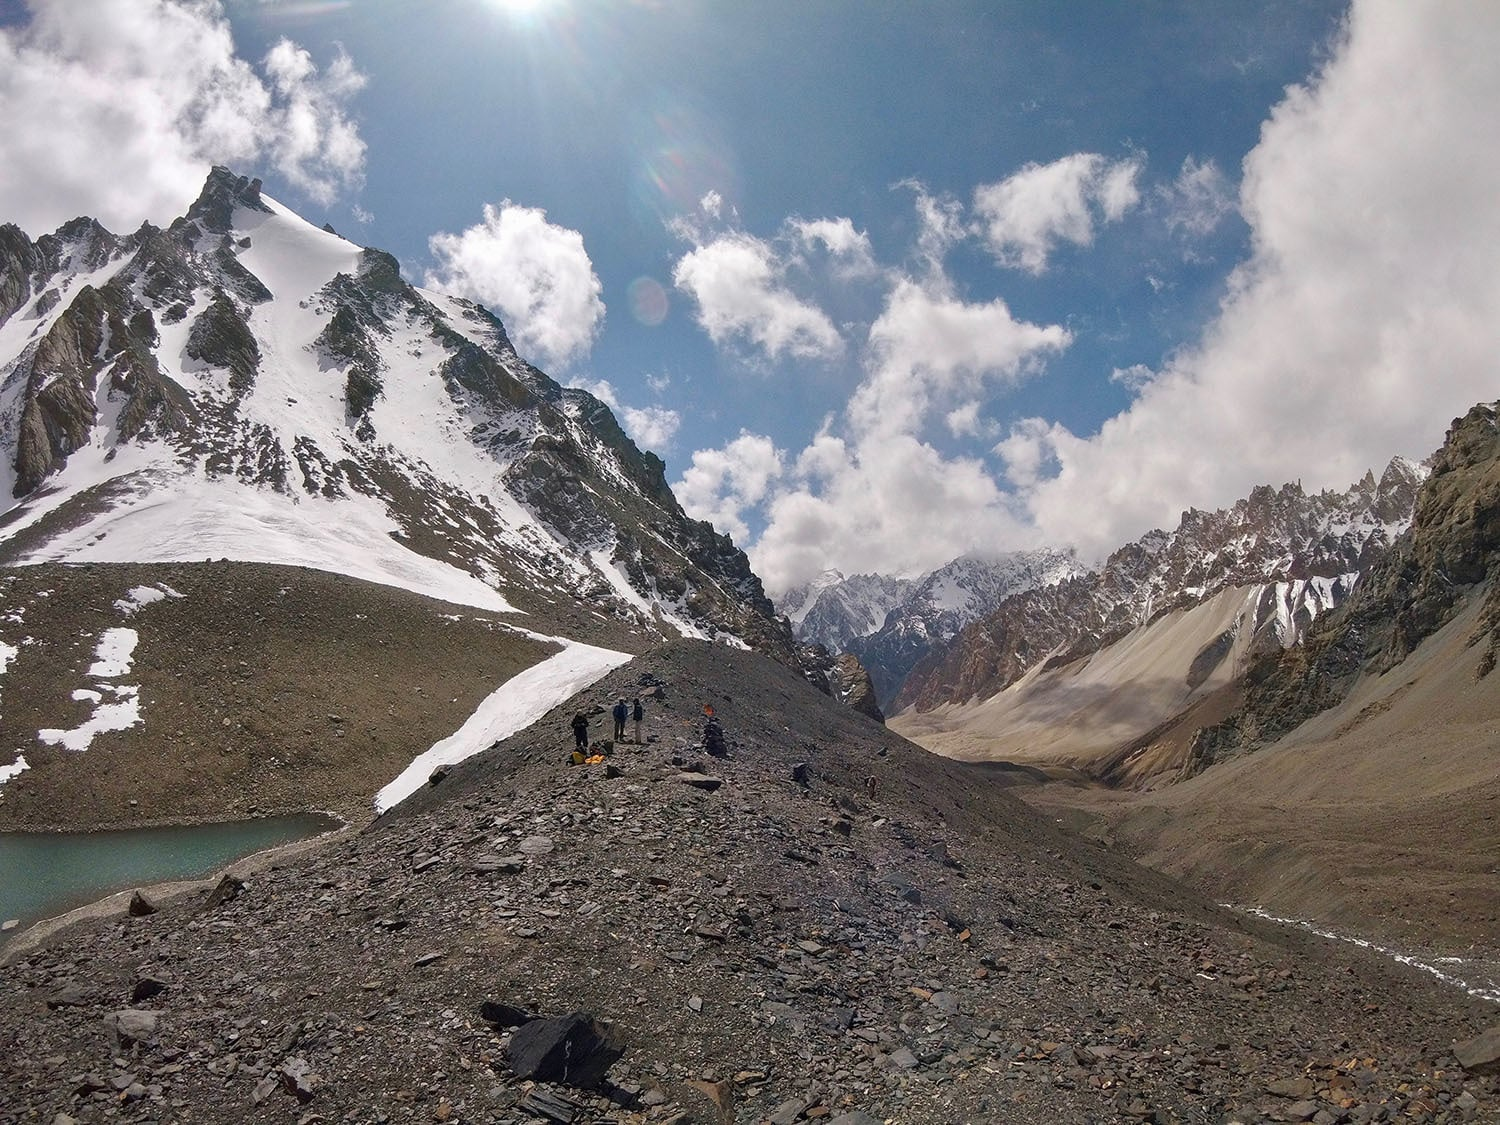 Day 3: Standing on top of Boisam Pass (5,000m).